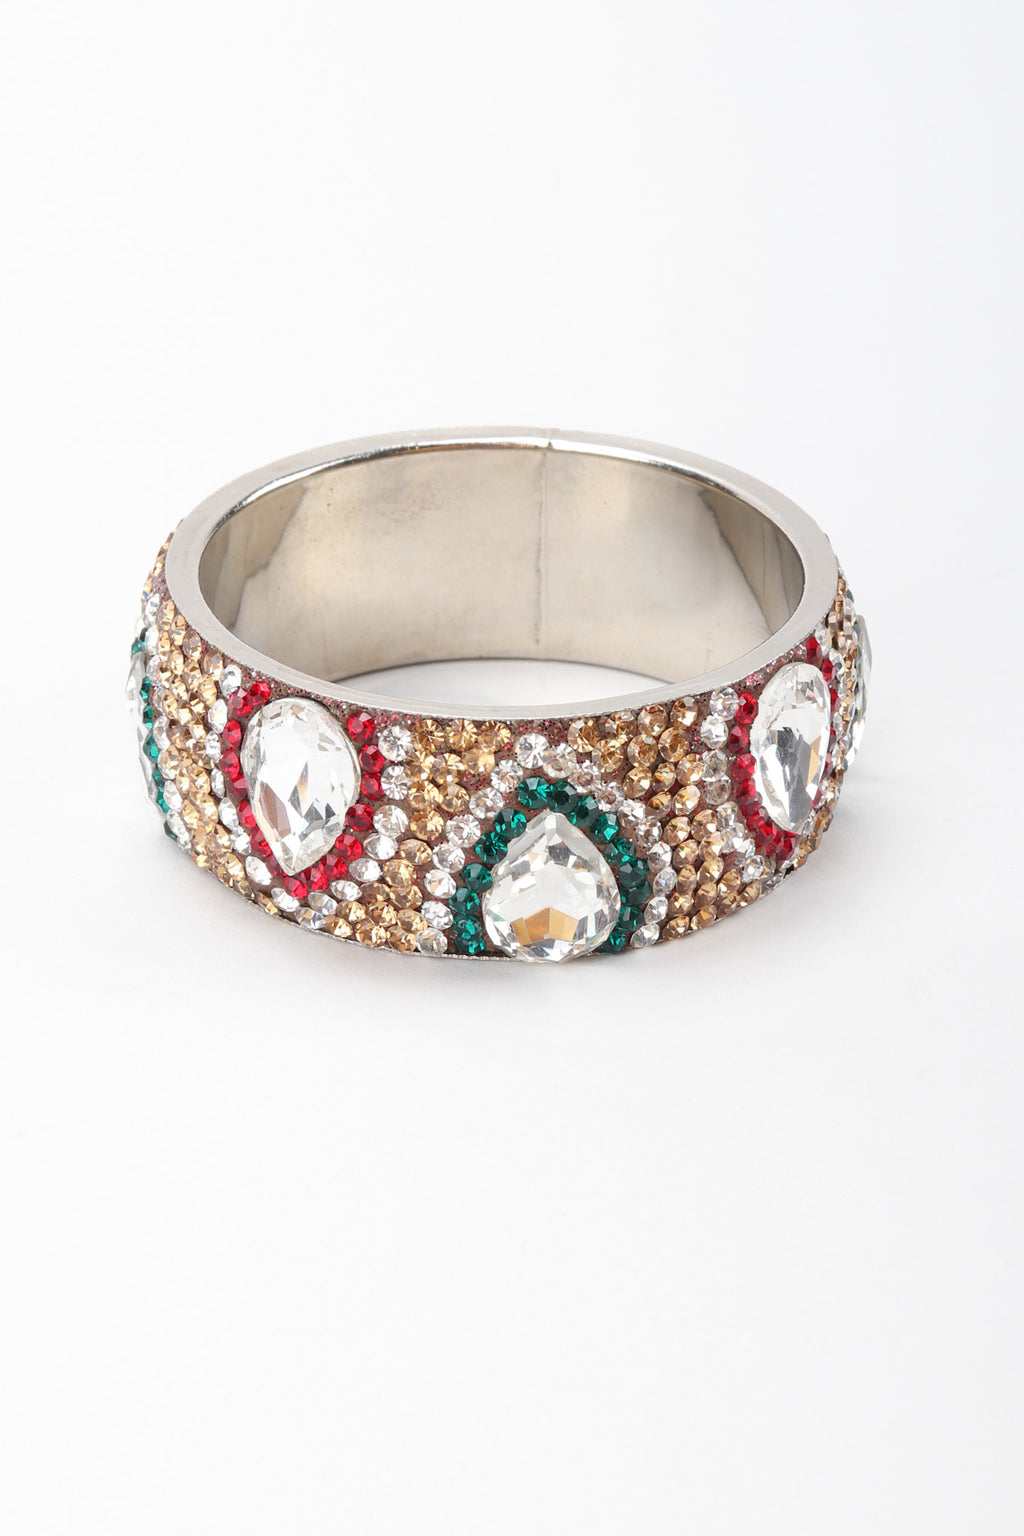 Recess Los Angeles Vintage Crystal Rhinestone Flame Indian Paisley Gucci Bangle